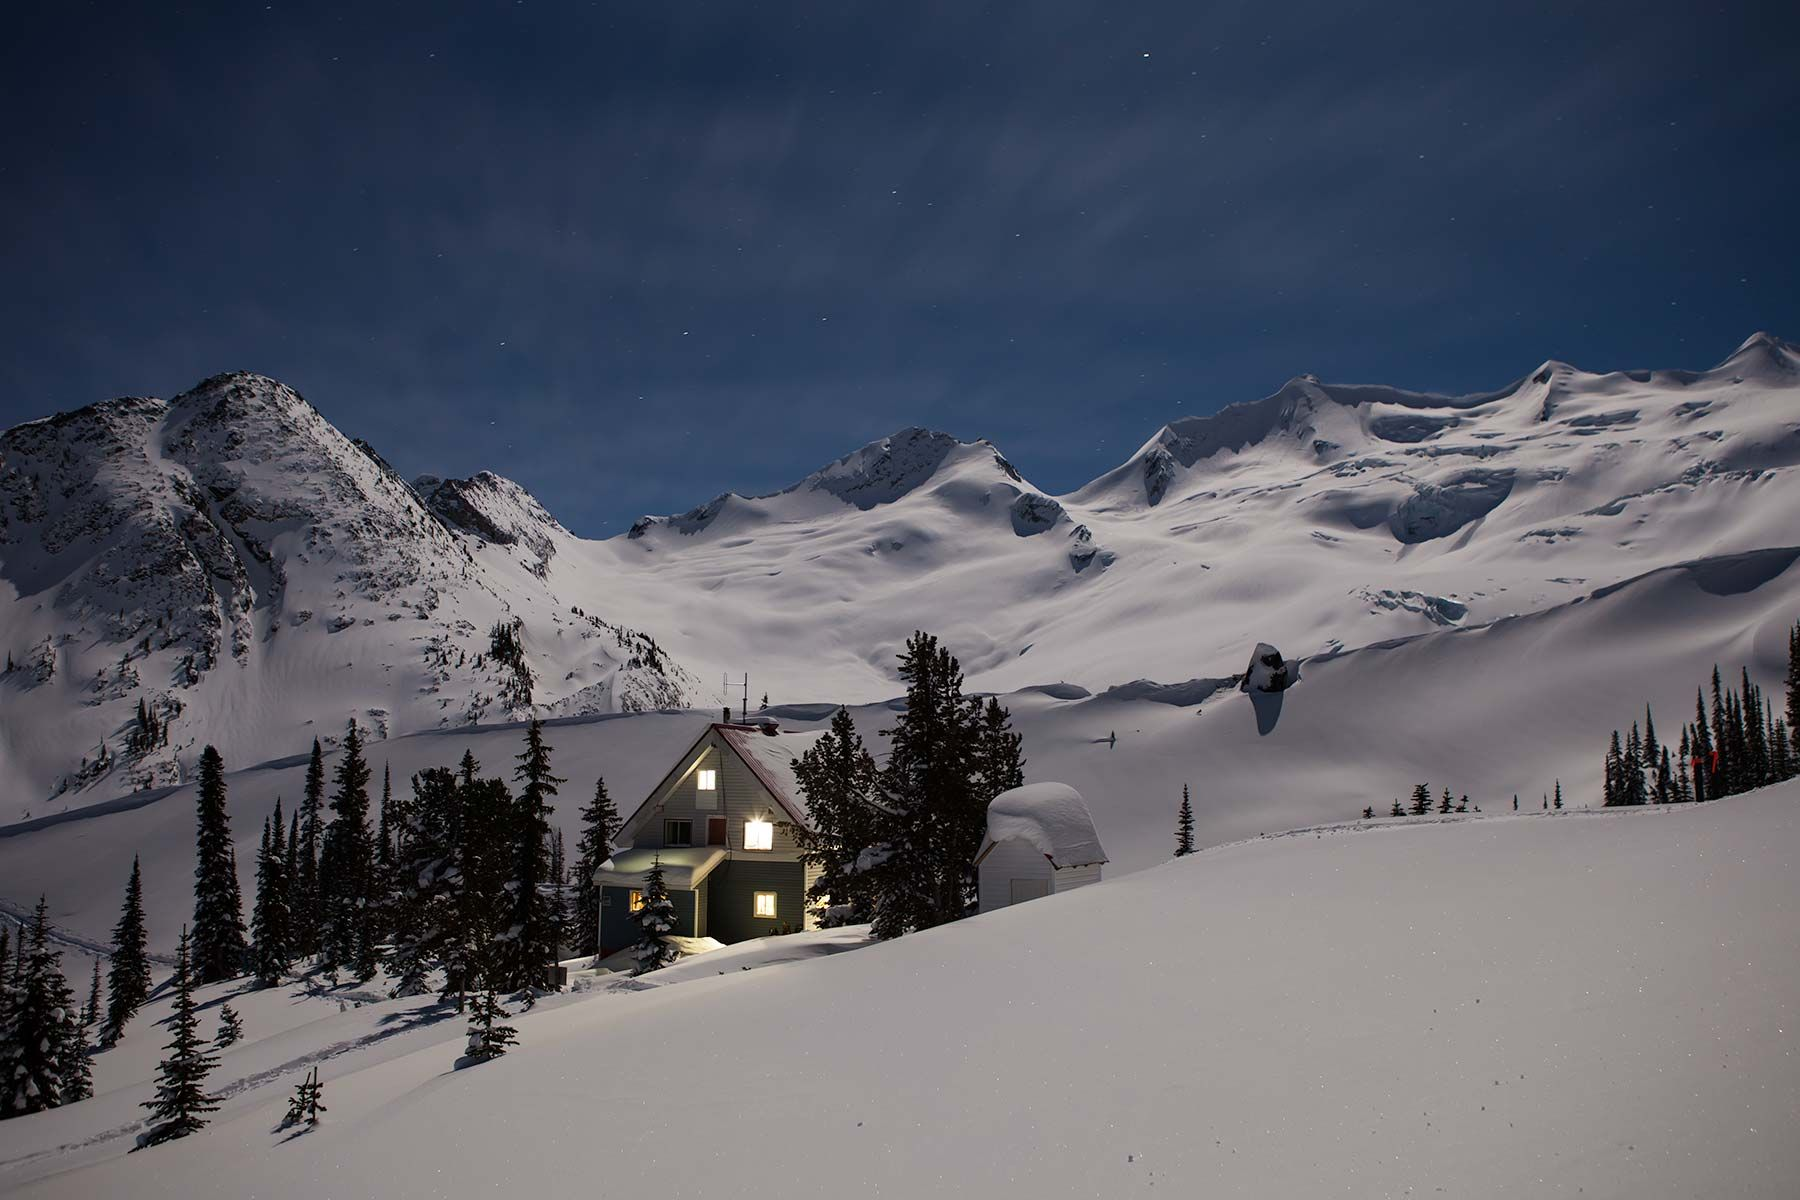 Sorcerer Lodge | Backcountry Lodge | Ski Touring | Backcountry Skiing | Golden British Columbia | Selkirk Mountains | Snowboarding | Mountaineering | Powder Snow